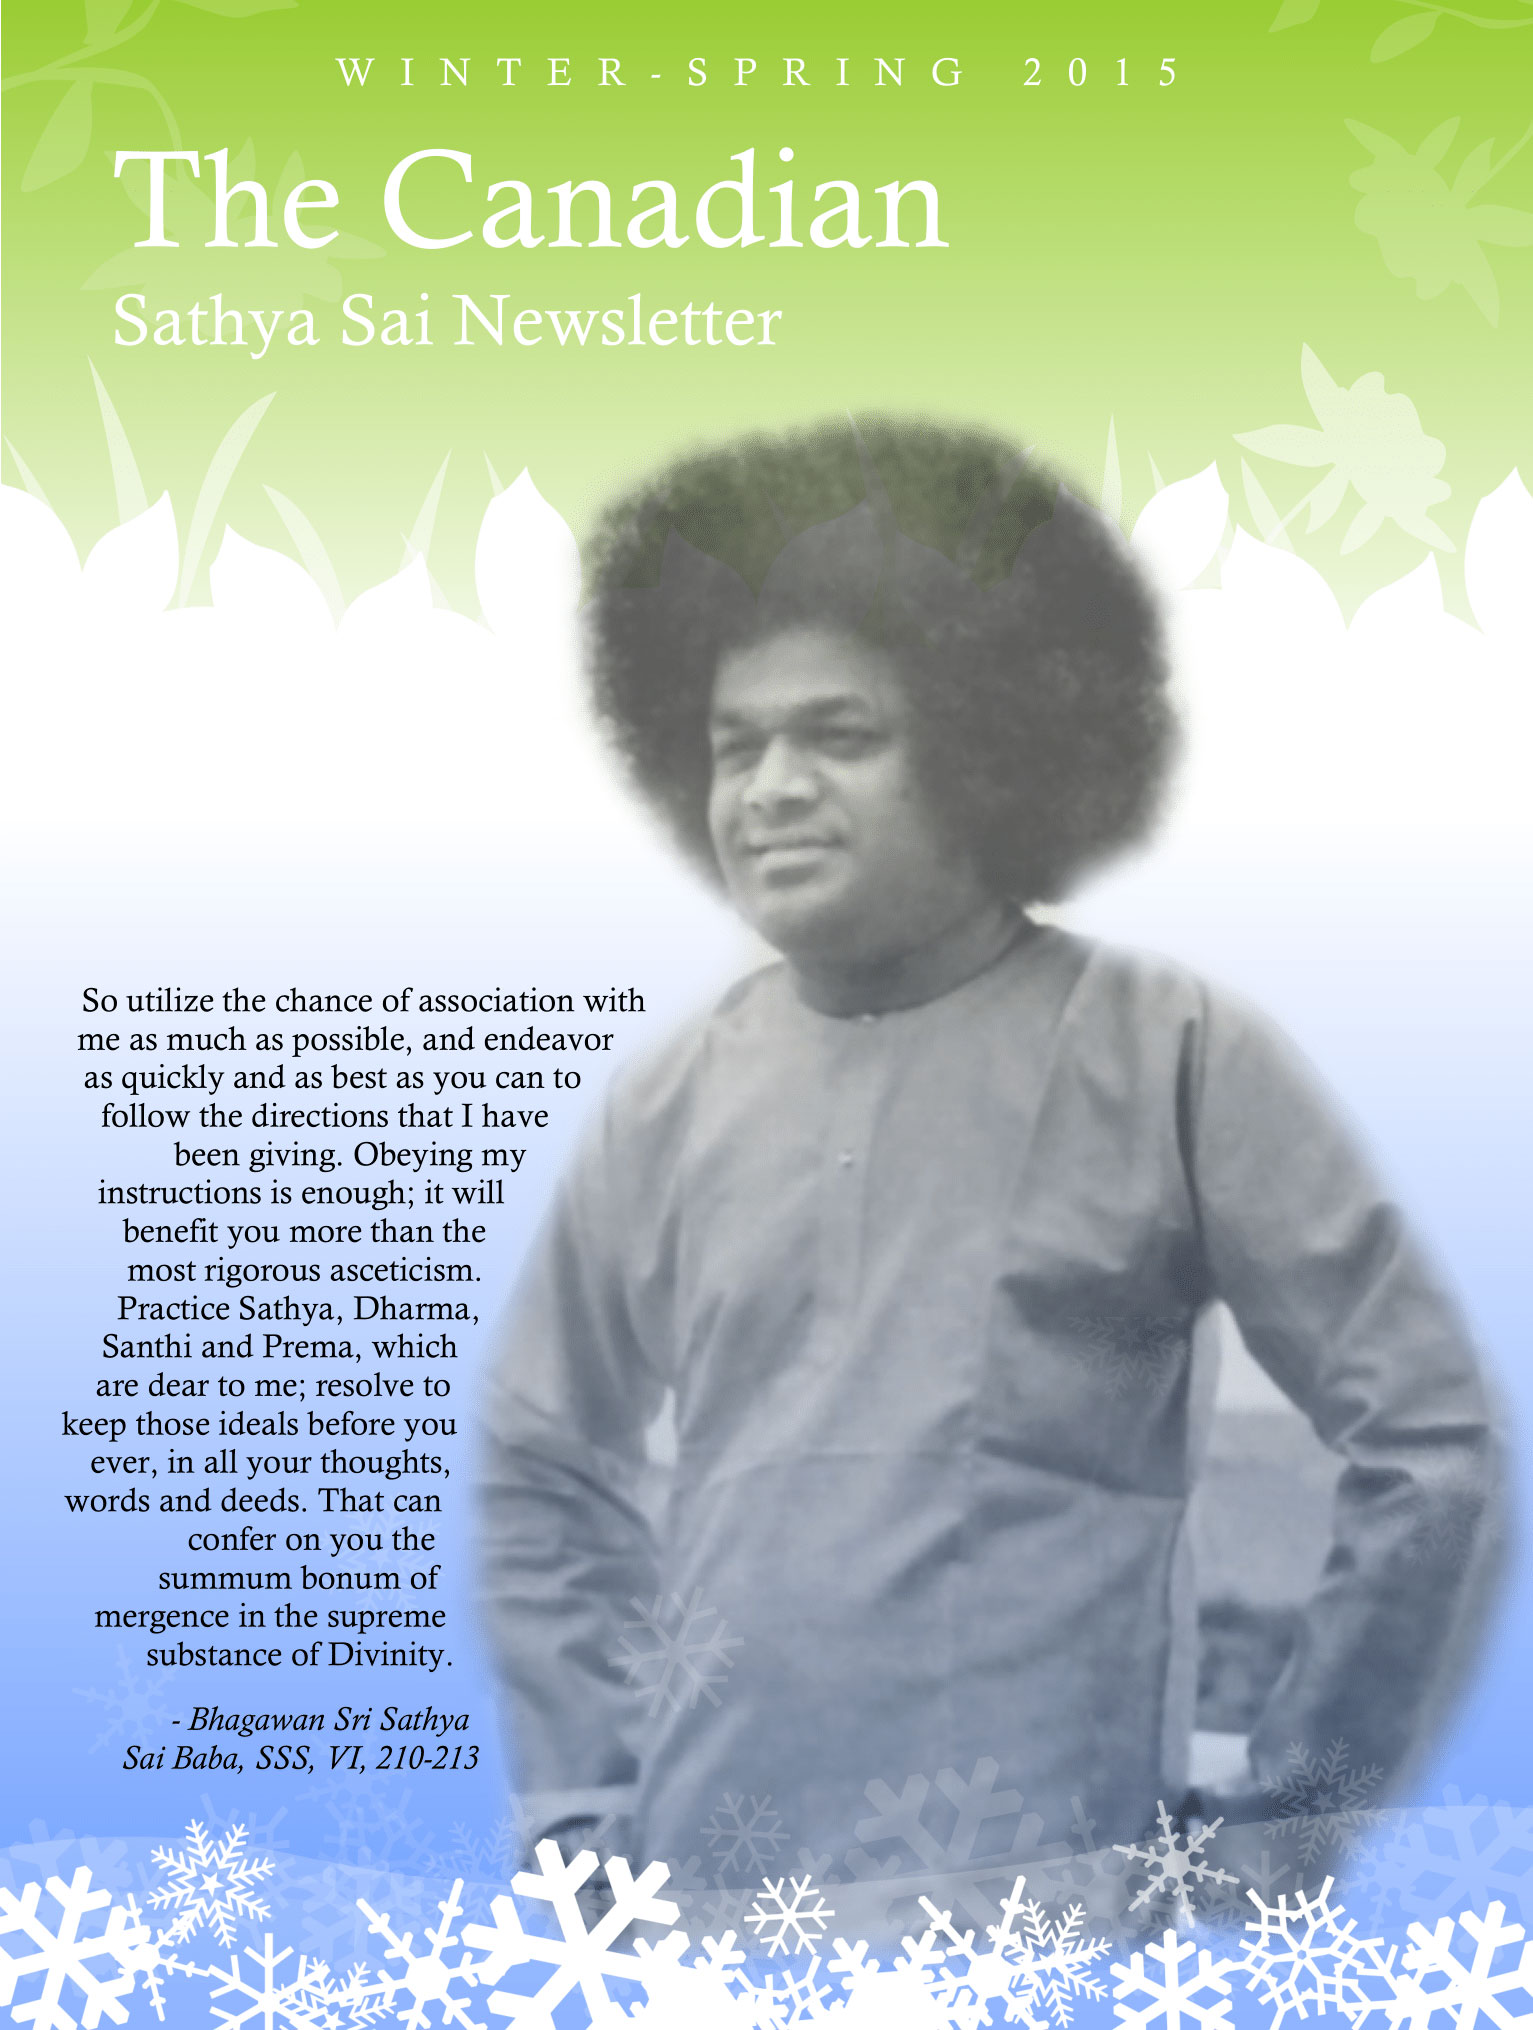 The Canadian Sathya Sai Magazine - Winter-Spring 2015